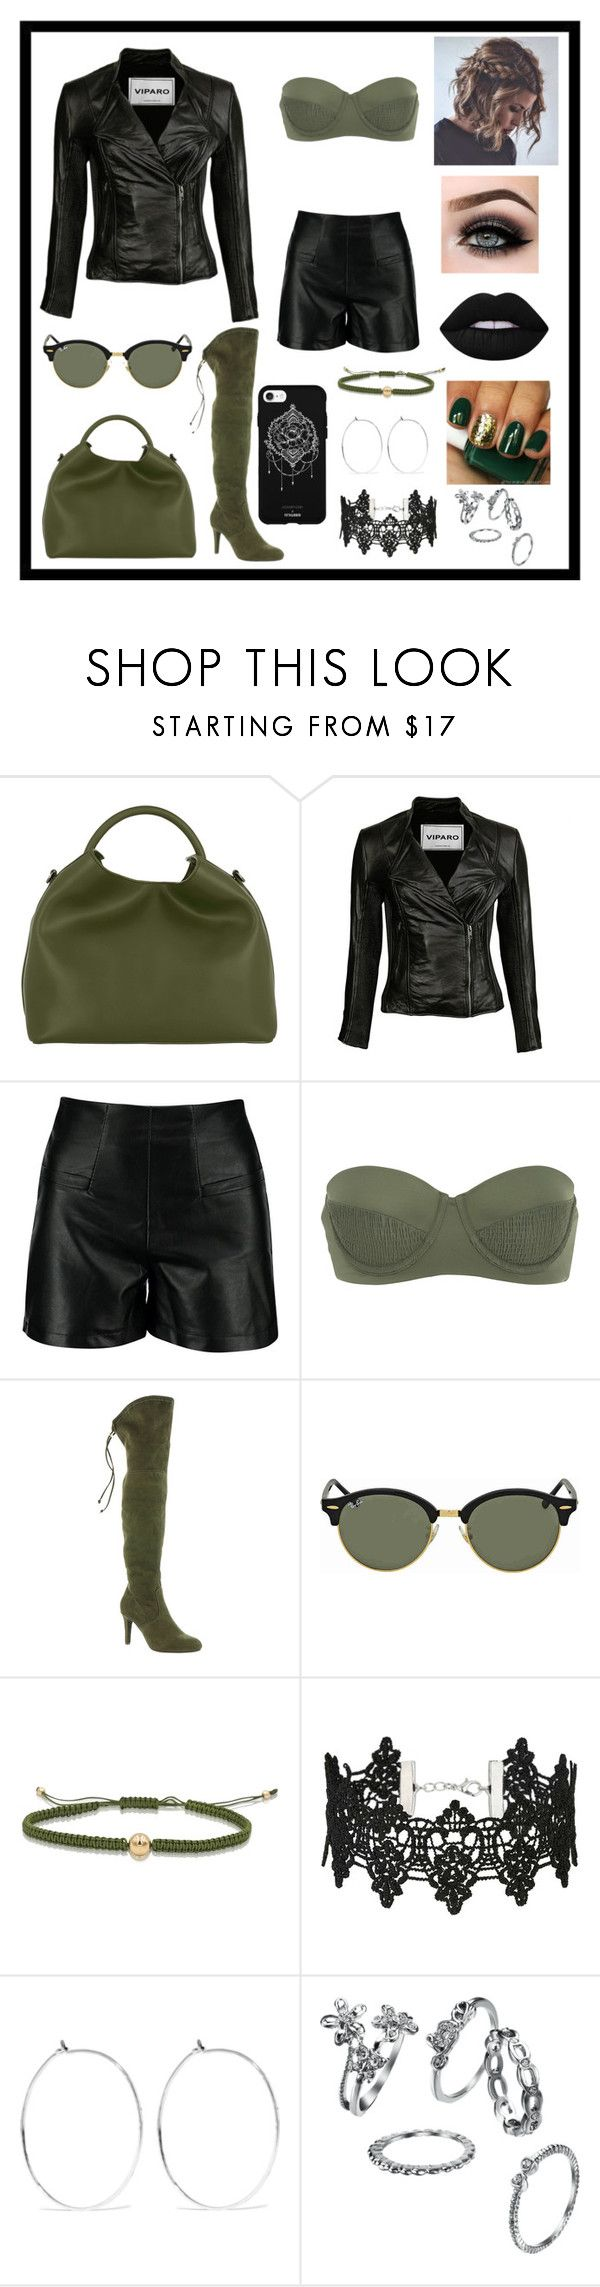 """Green 💚🖤"" by notsorandom19 ❤ liked on Polyvore featuring Elleme, Tori Praver Swimwear, Rialto, Ray-Ban, Miss Selfridge, Catbird, Fifth & Ninth, ASAP and 40"